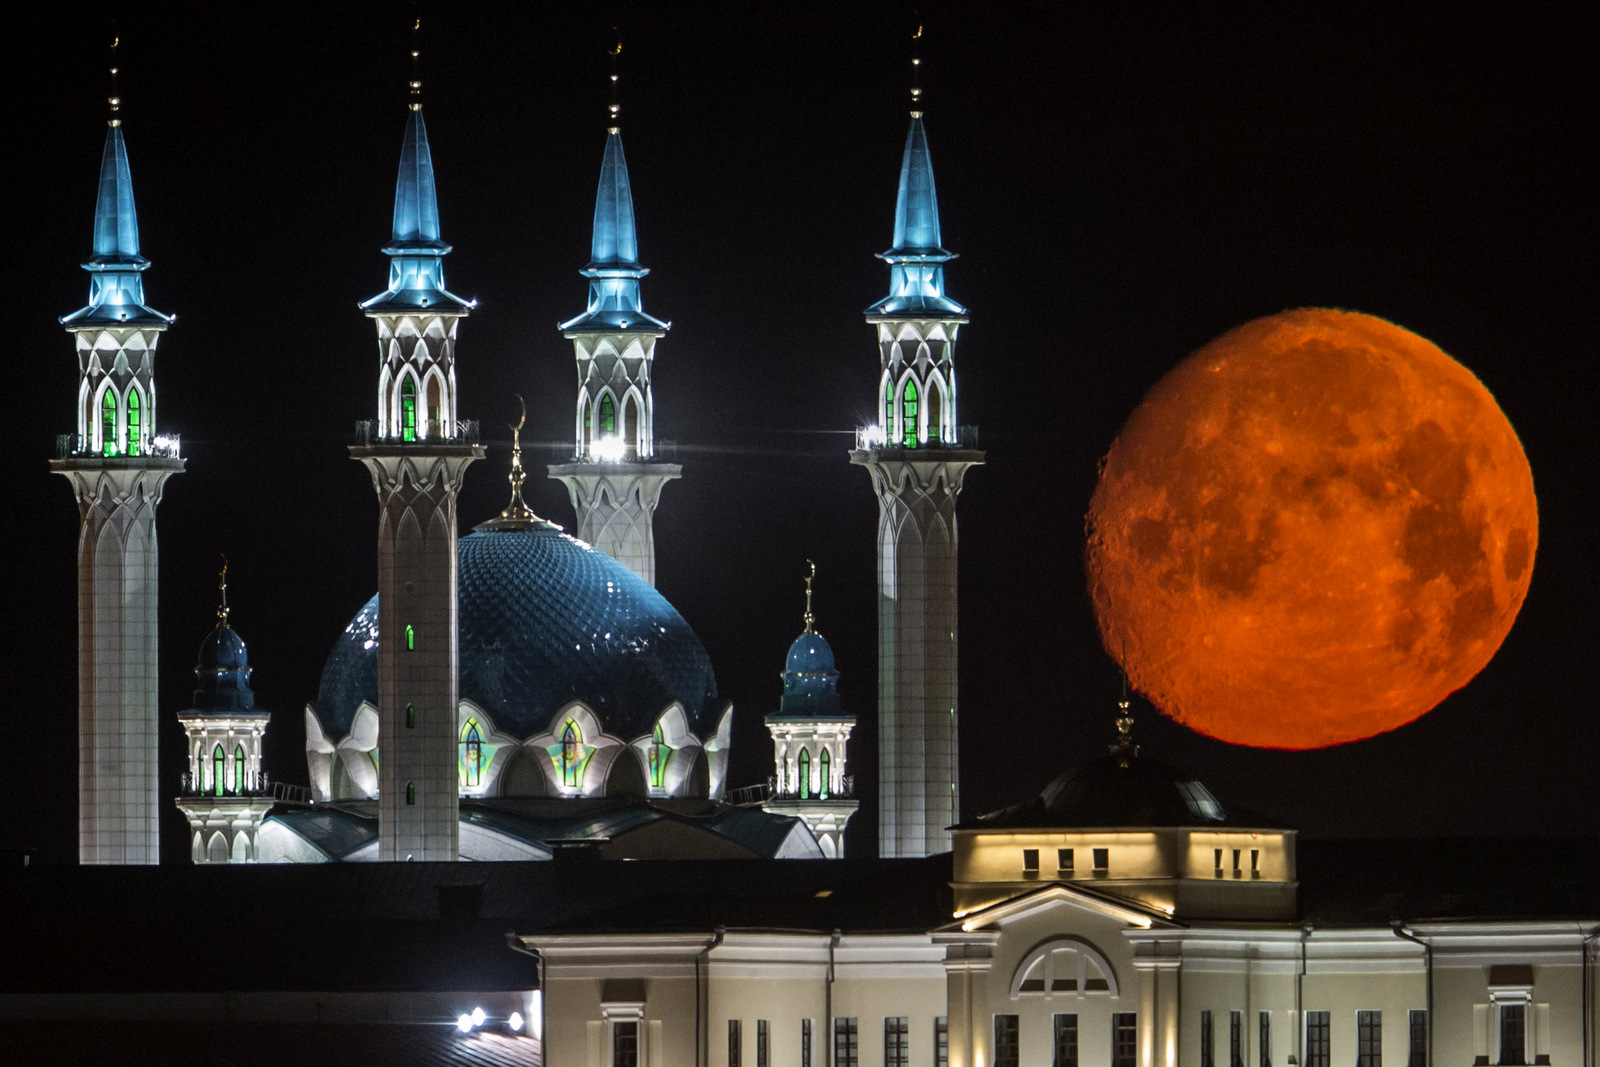 The full moon rises over the illuminated Kazan Kremlin with the Qol Sharif mosque illuminated in Kazan, the capital of Tatarstan, located in Russia's Volga River area about 700 km (450 miles) east of Moscow, July, 29, 2015. (AP Photo/Denis Tyrin)